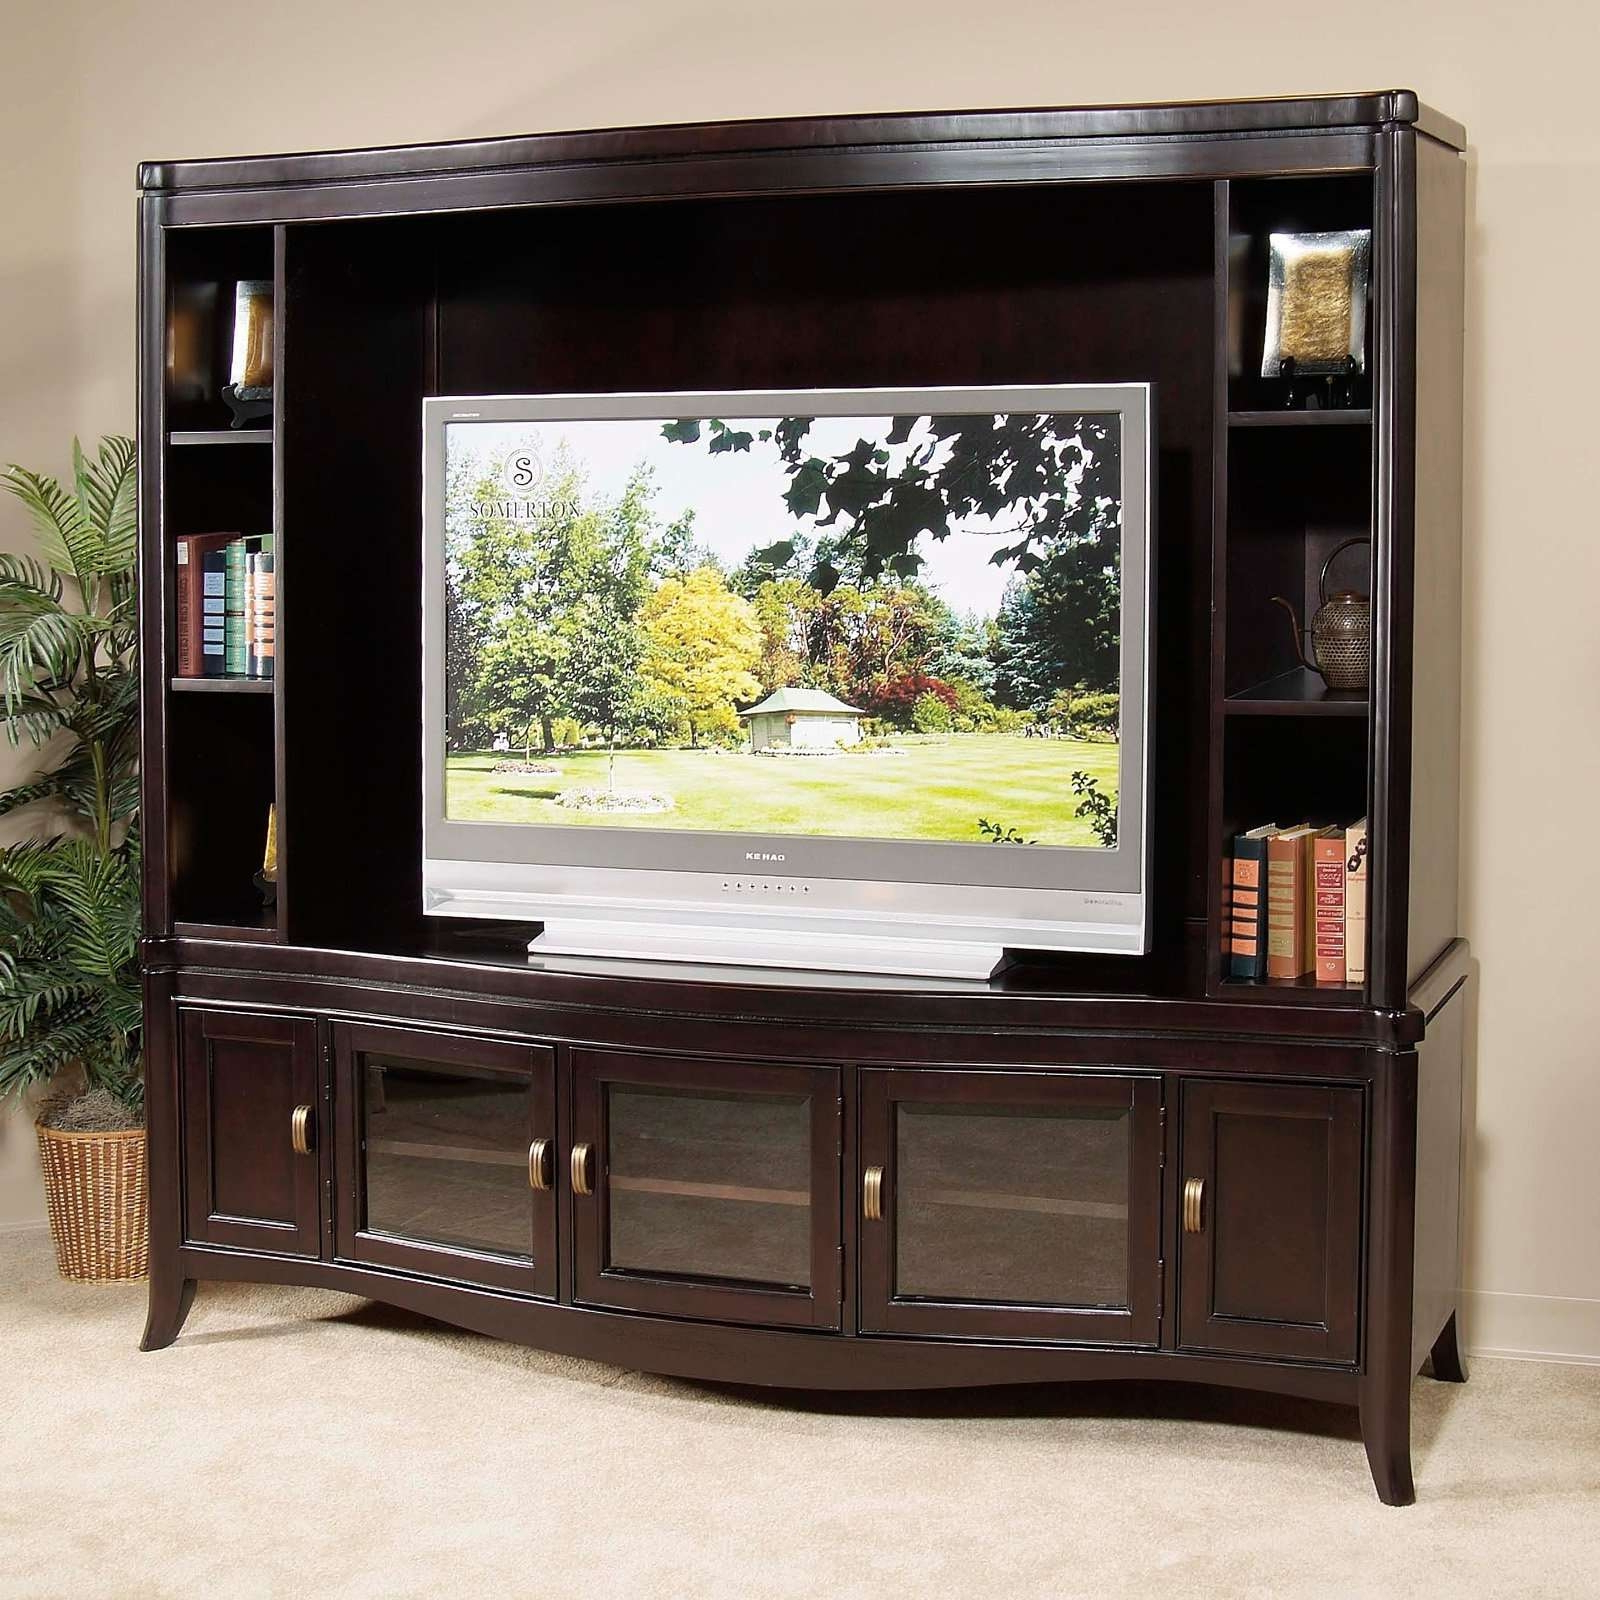 Lockable Tv Stands Pertaining To Favorite Lockable Tv Stands Decoration Ideas 1600×1600 Attachment (Gallery 6 of 20)